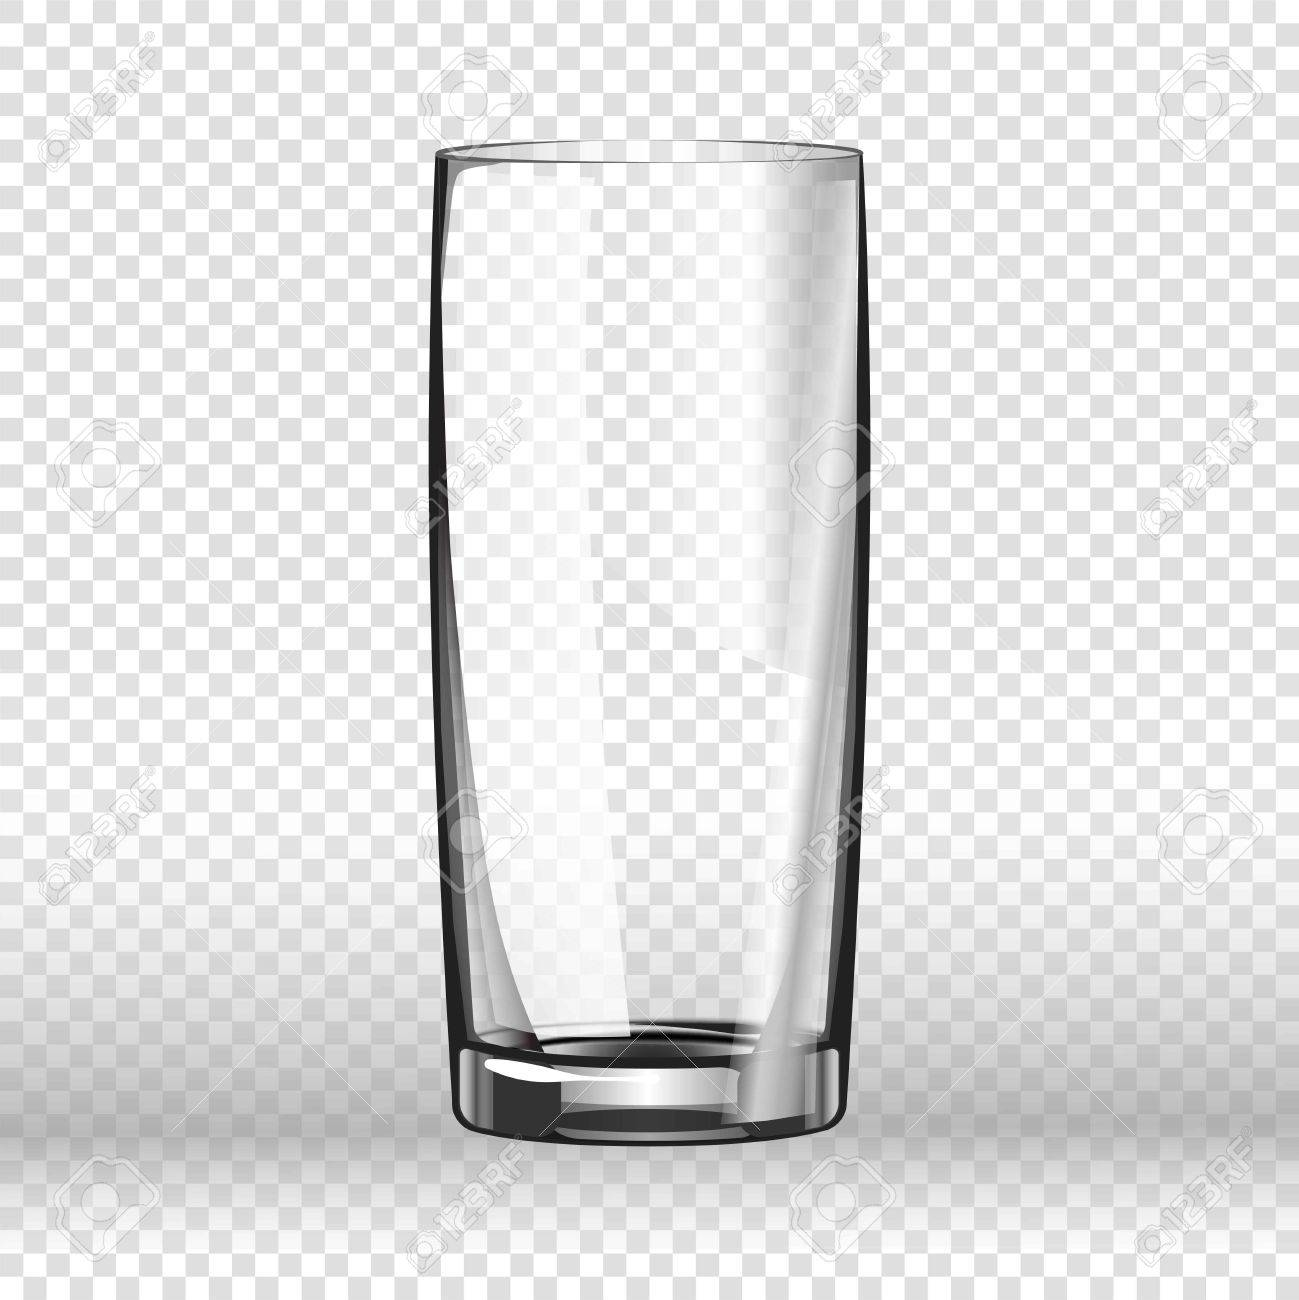 84c3f3bc75d Realistic long drinking glass isolated on transparent background. Tableware  element in flat style